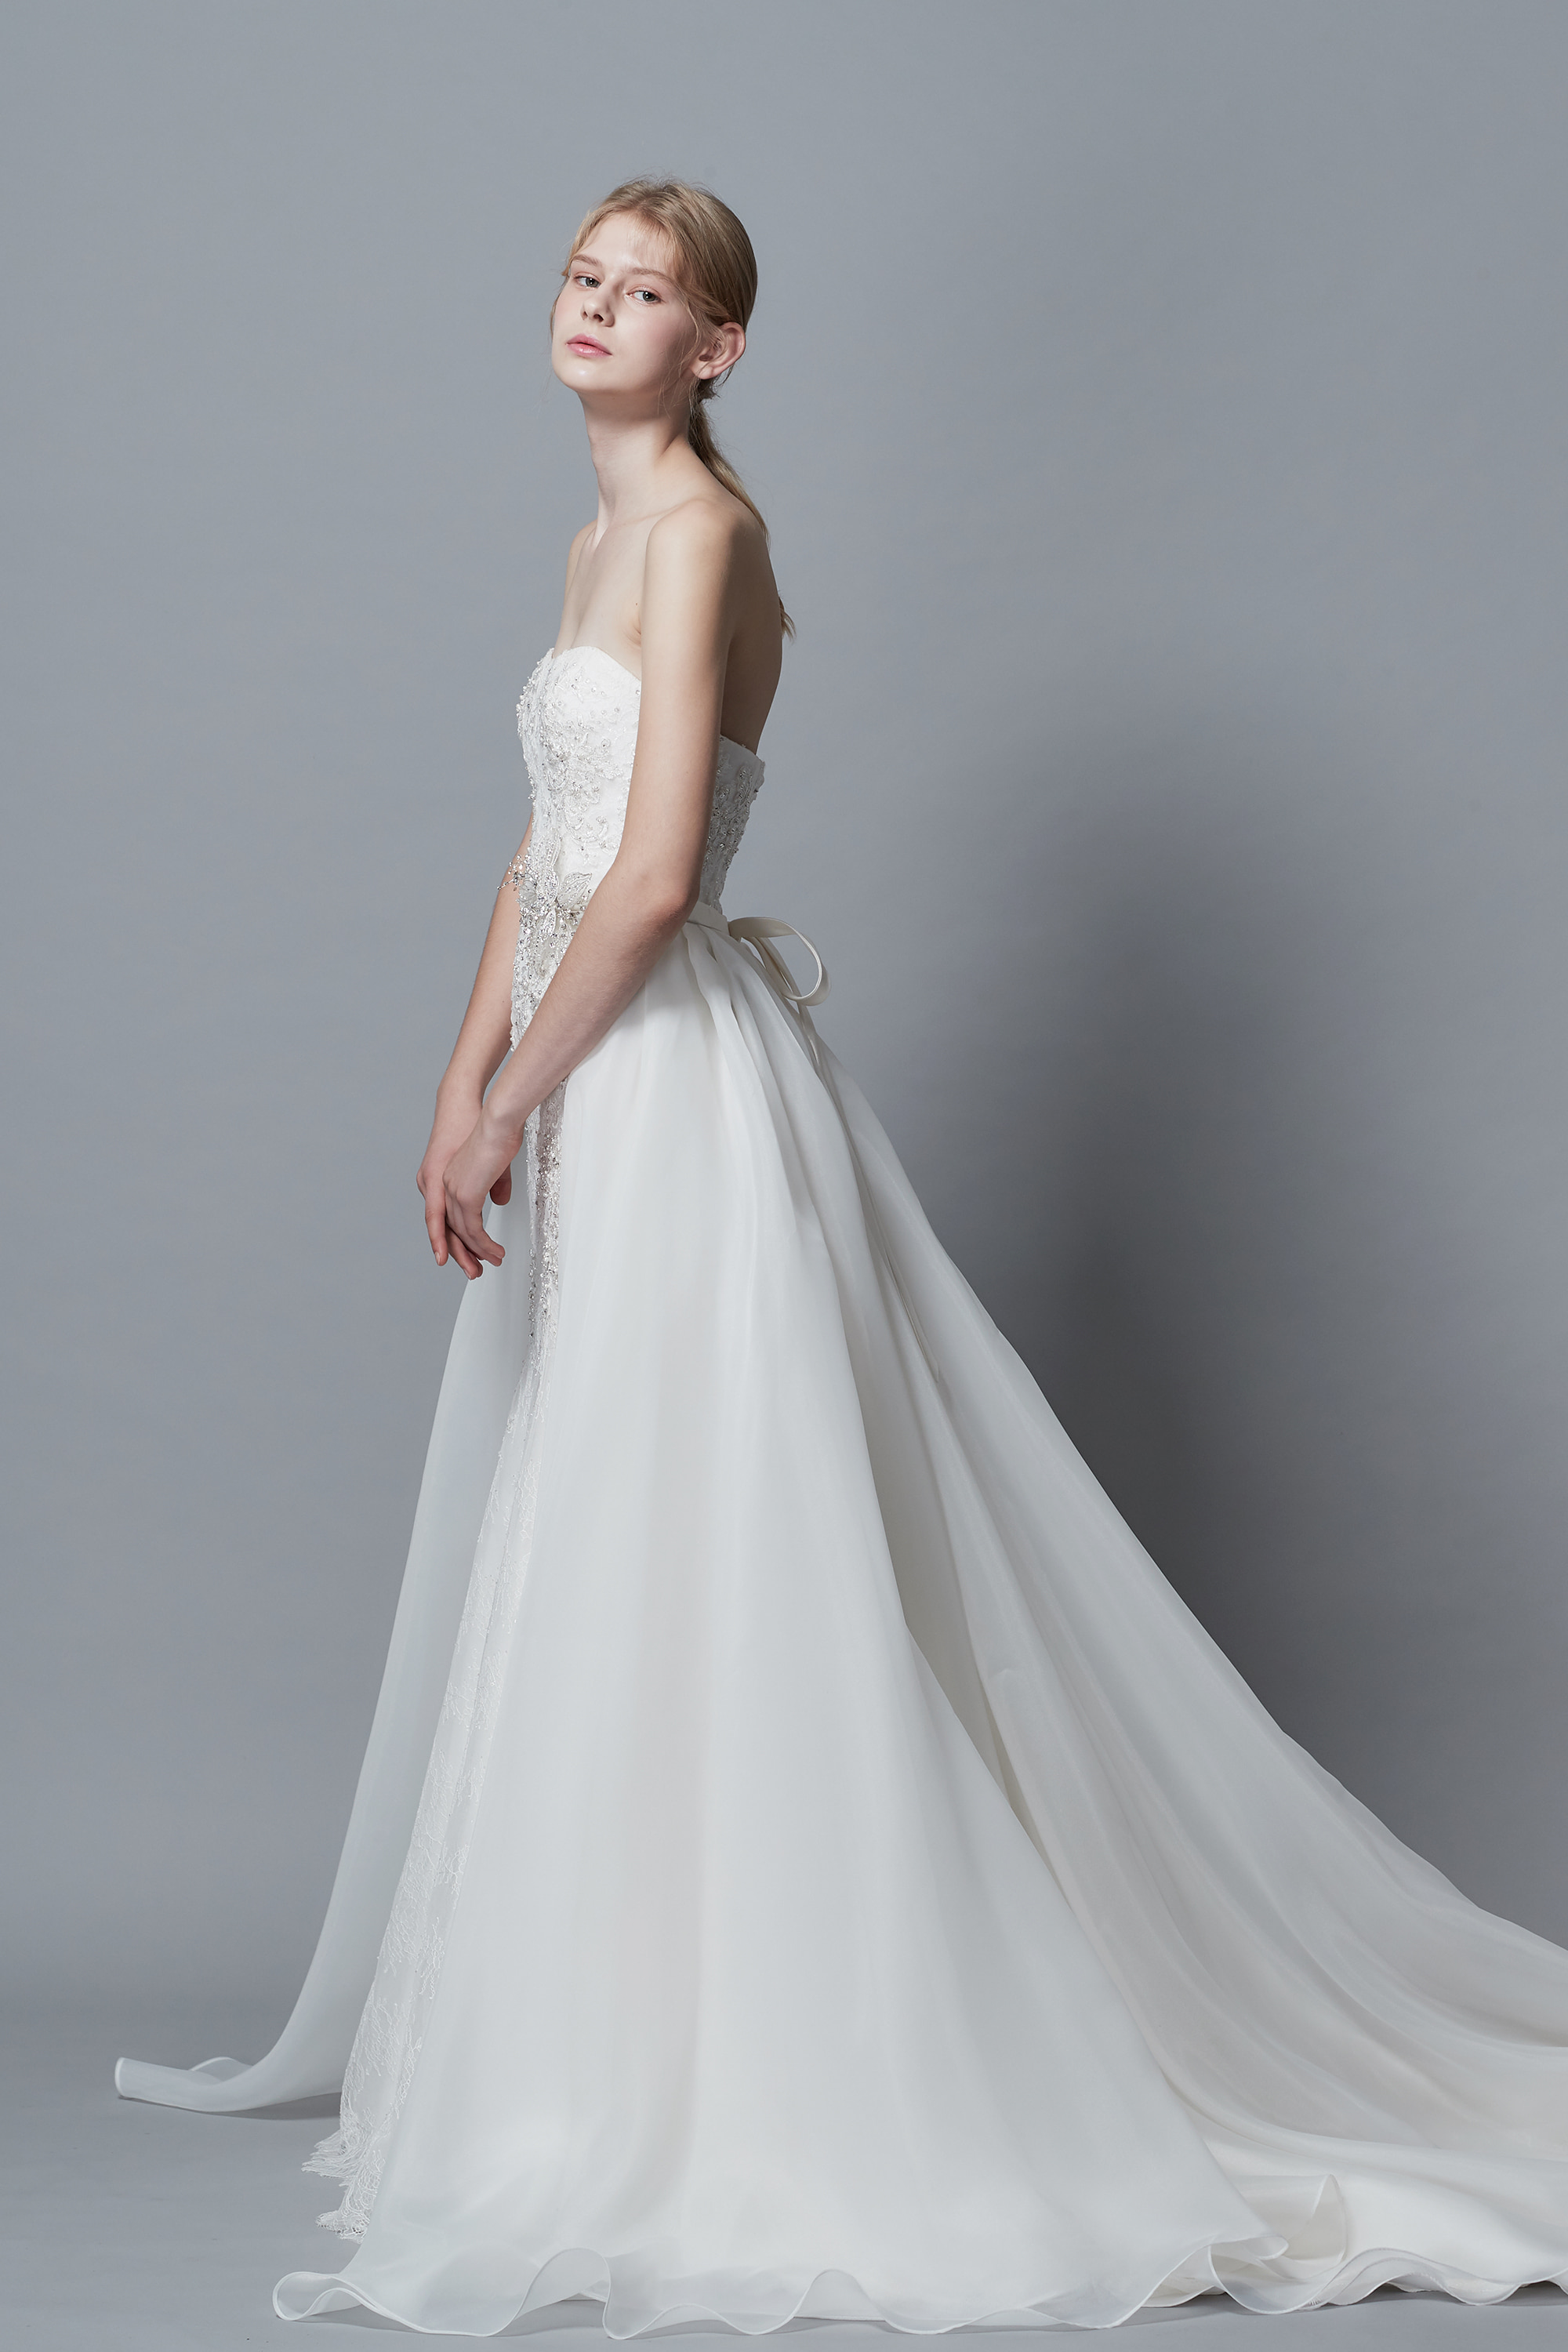 Ciel Blanc, WEDDING DRESS, DRESS